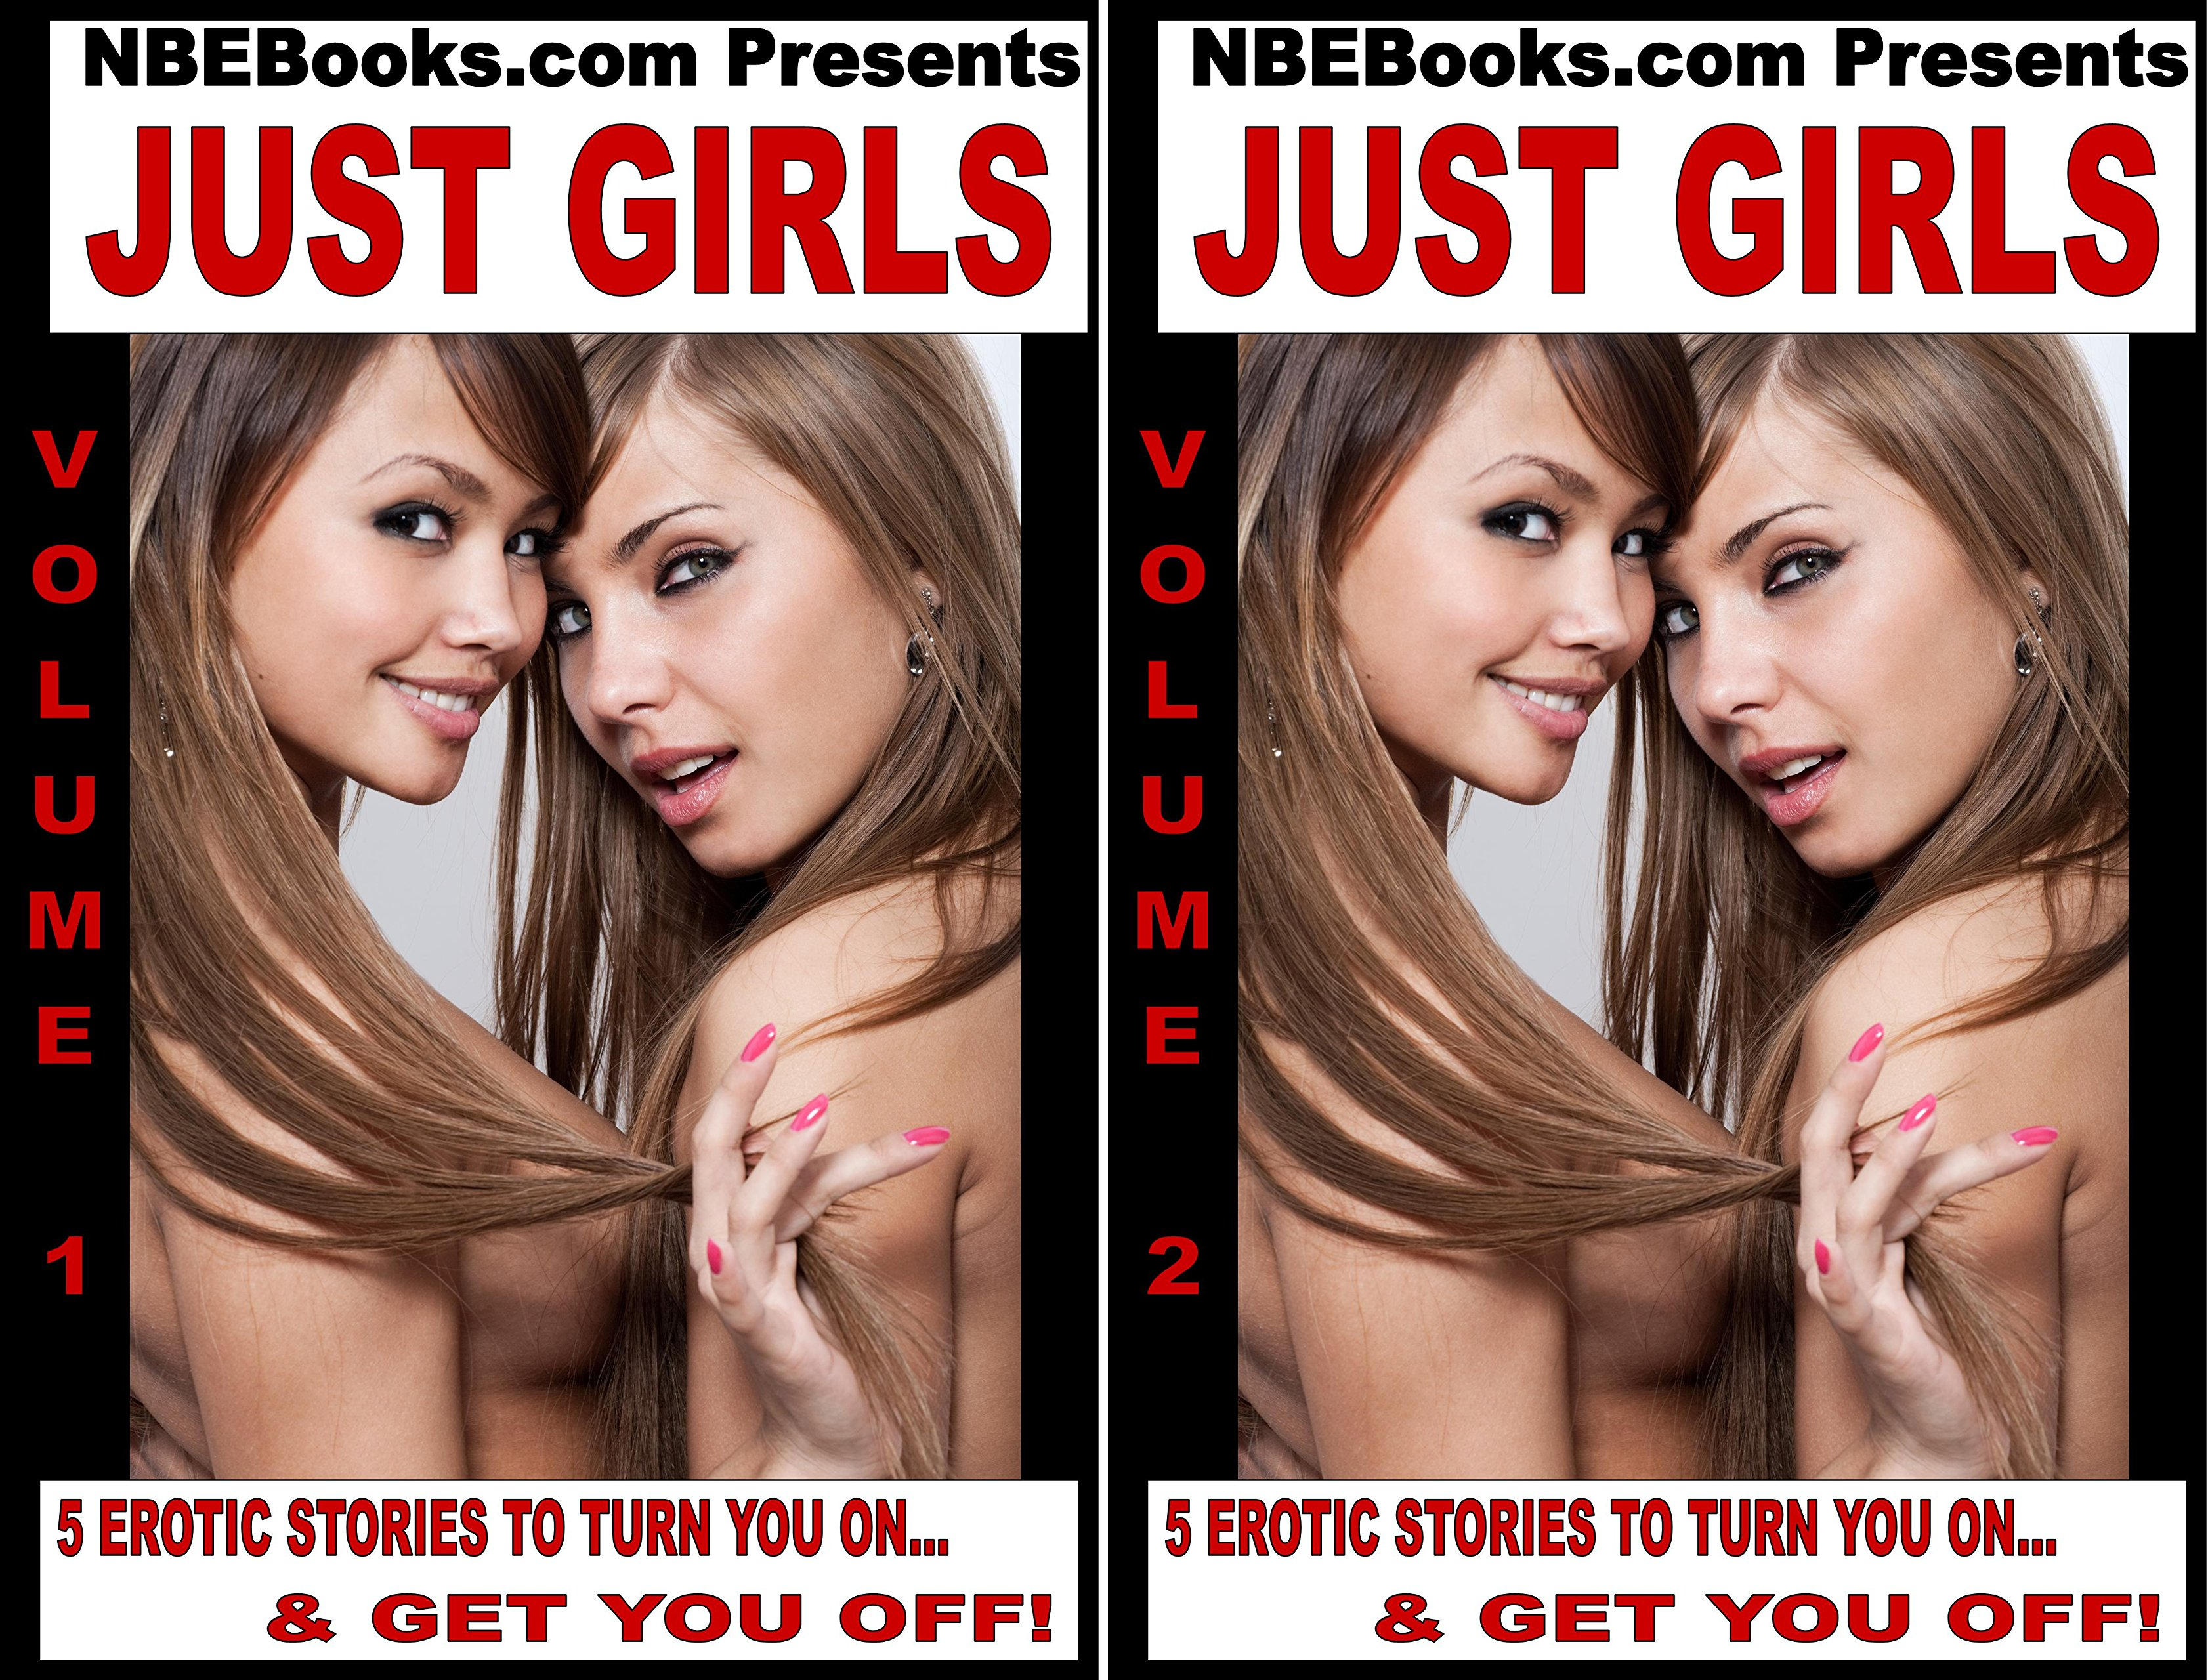 Just Girls! A Collection of Hot Lesbian Stories (2 Book Series)